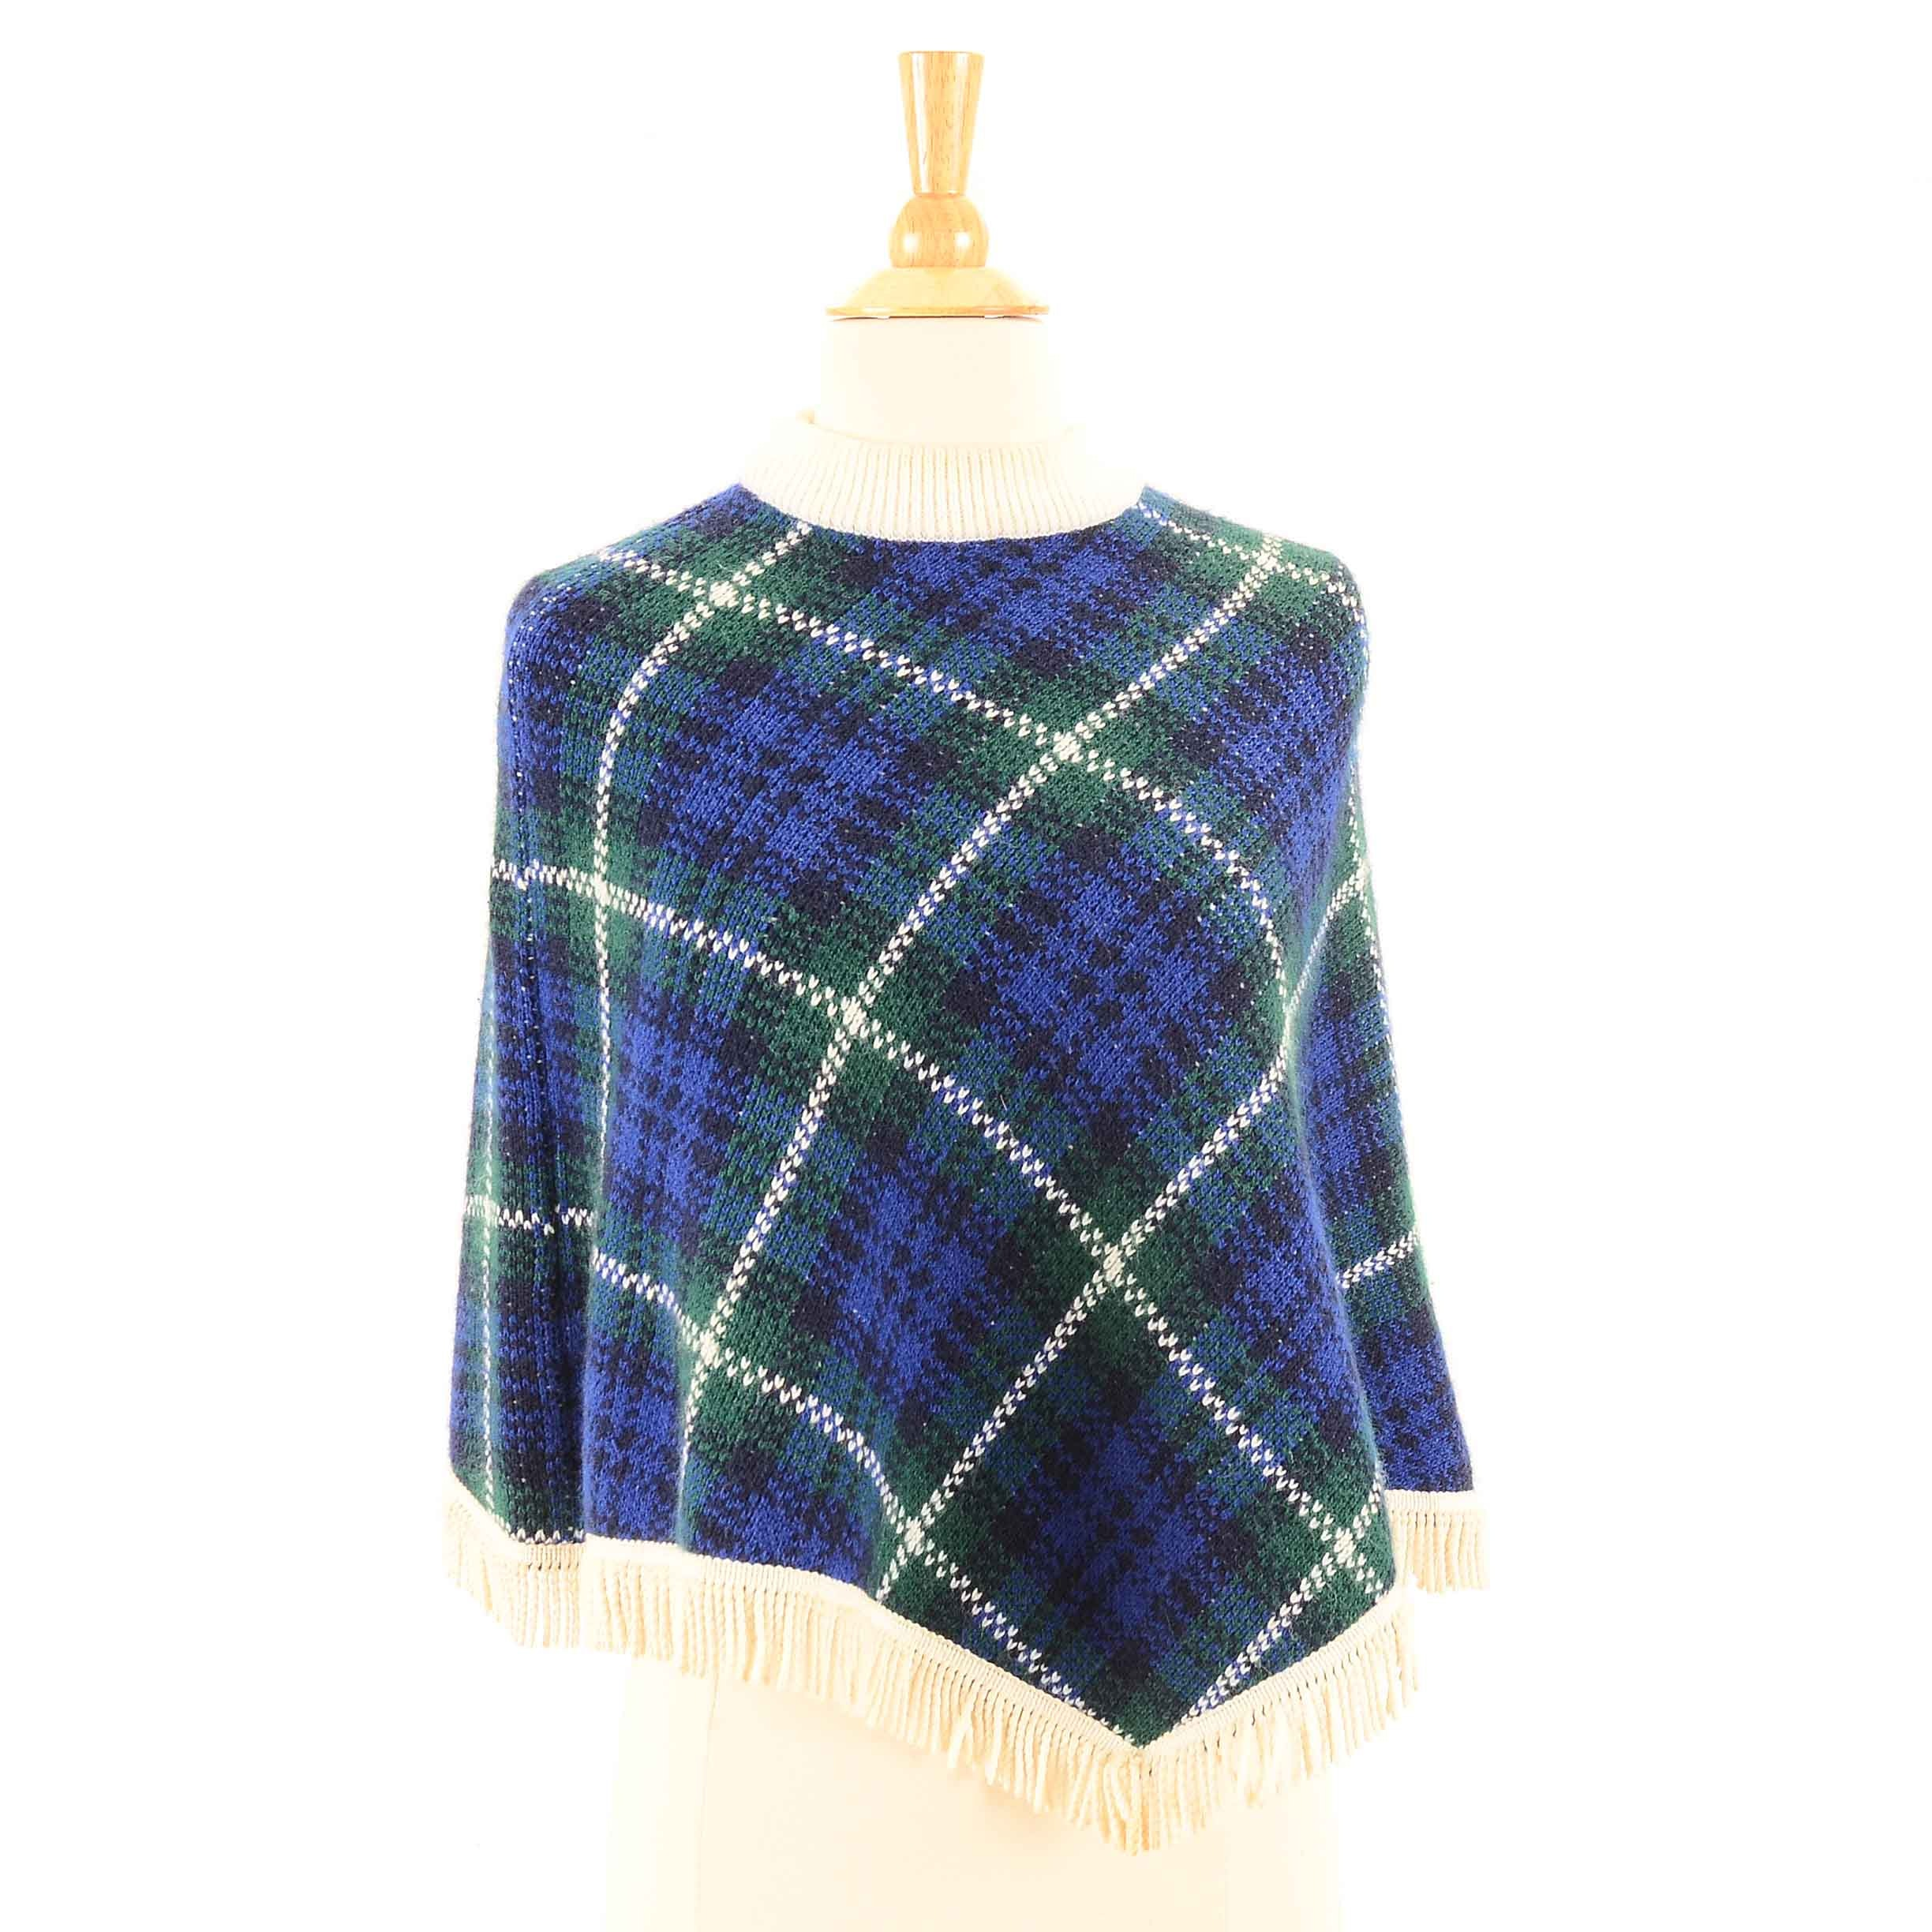 Vintage St. Michael Plaid Knit Poncho with Fringe